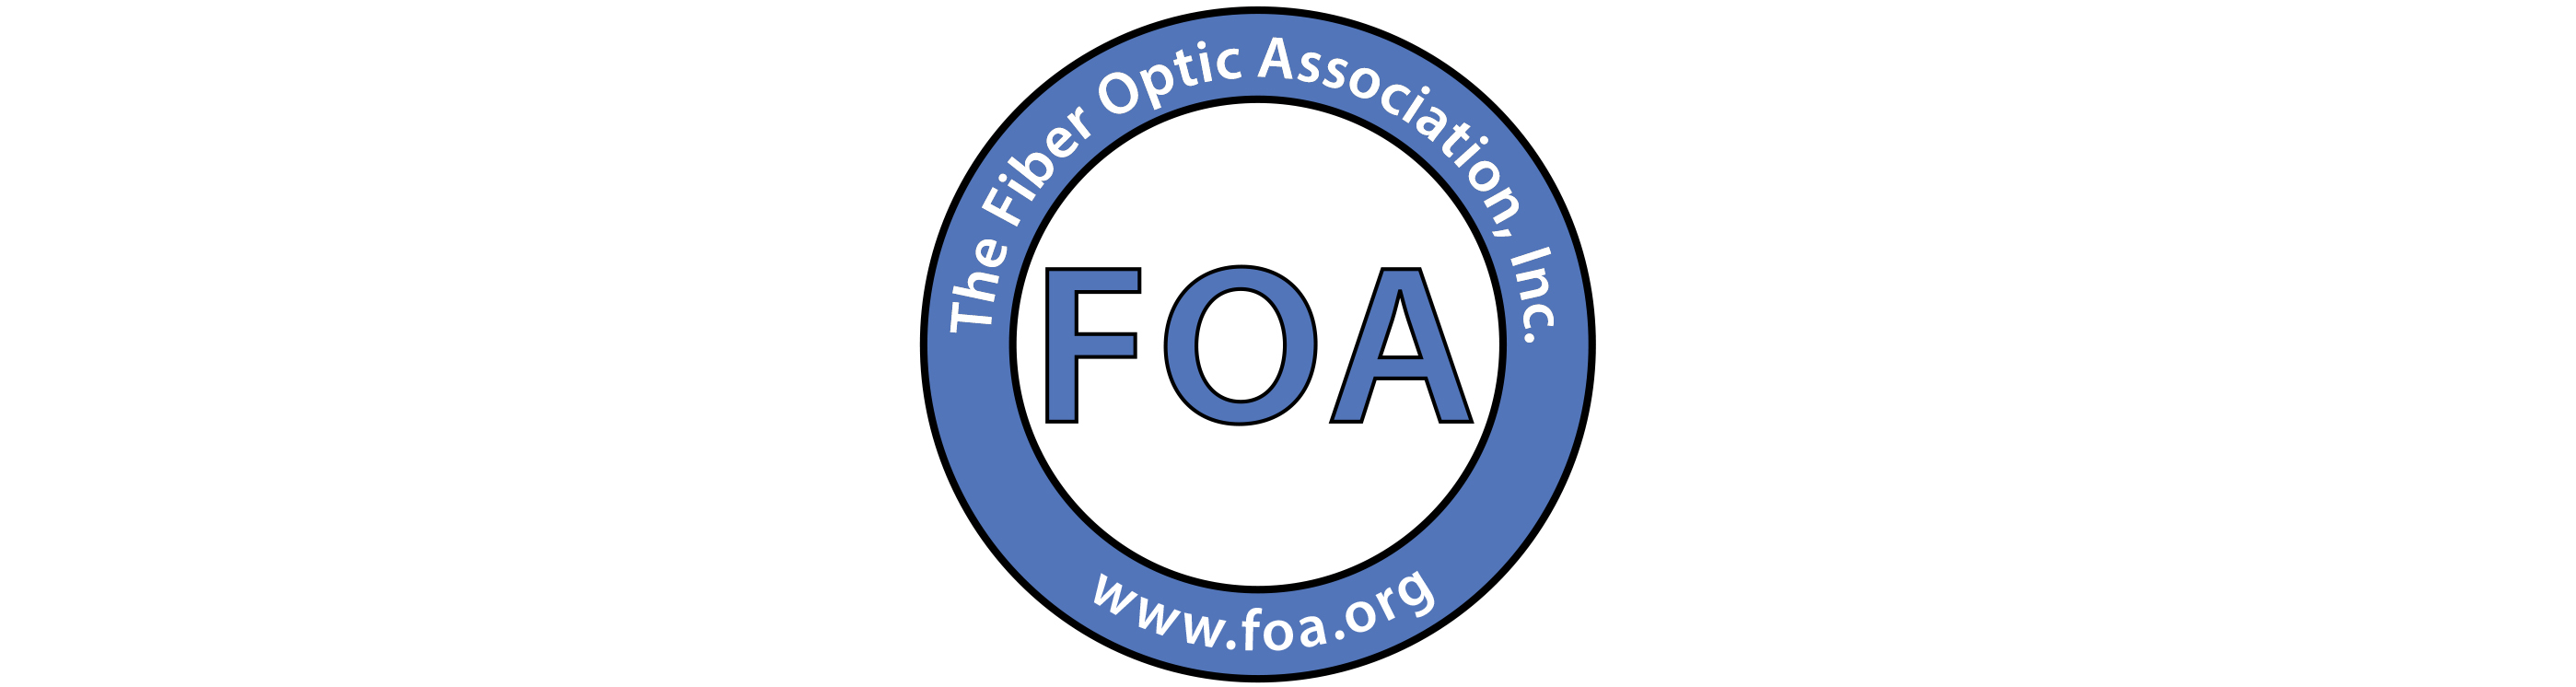 The Fiber Optic Association (logo) (blog image)